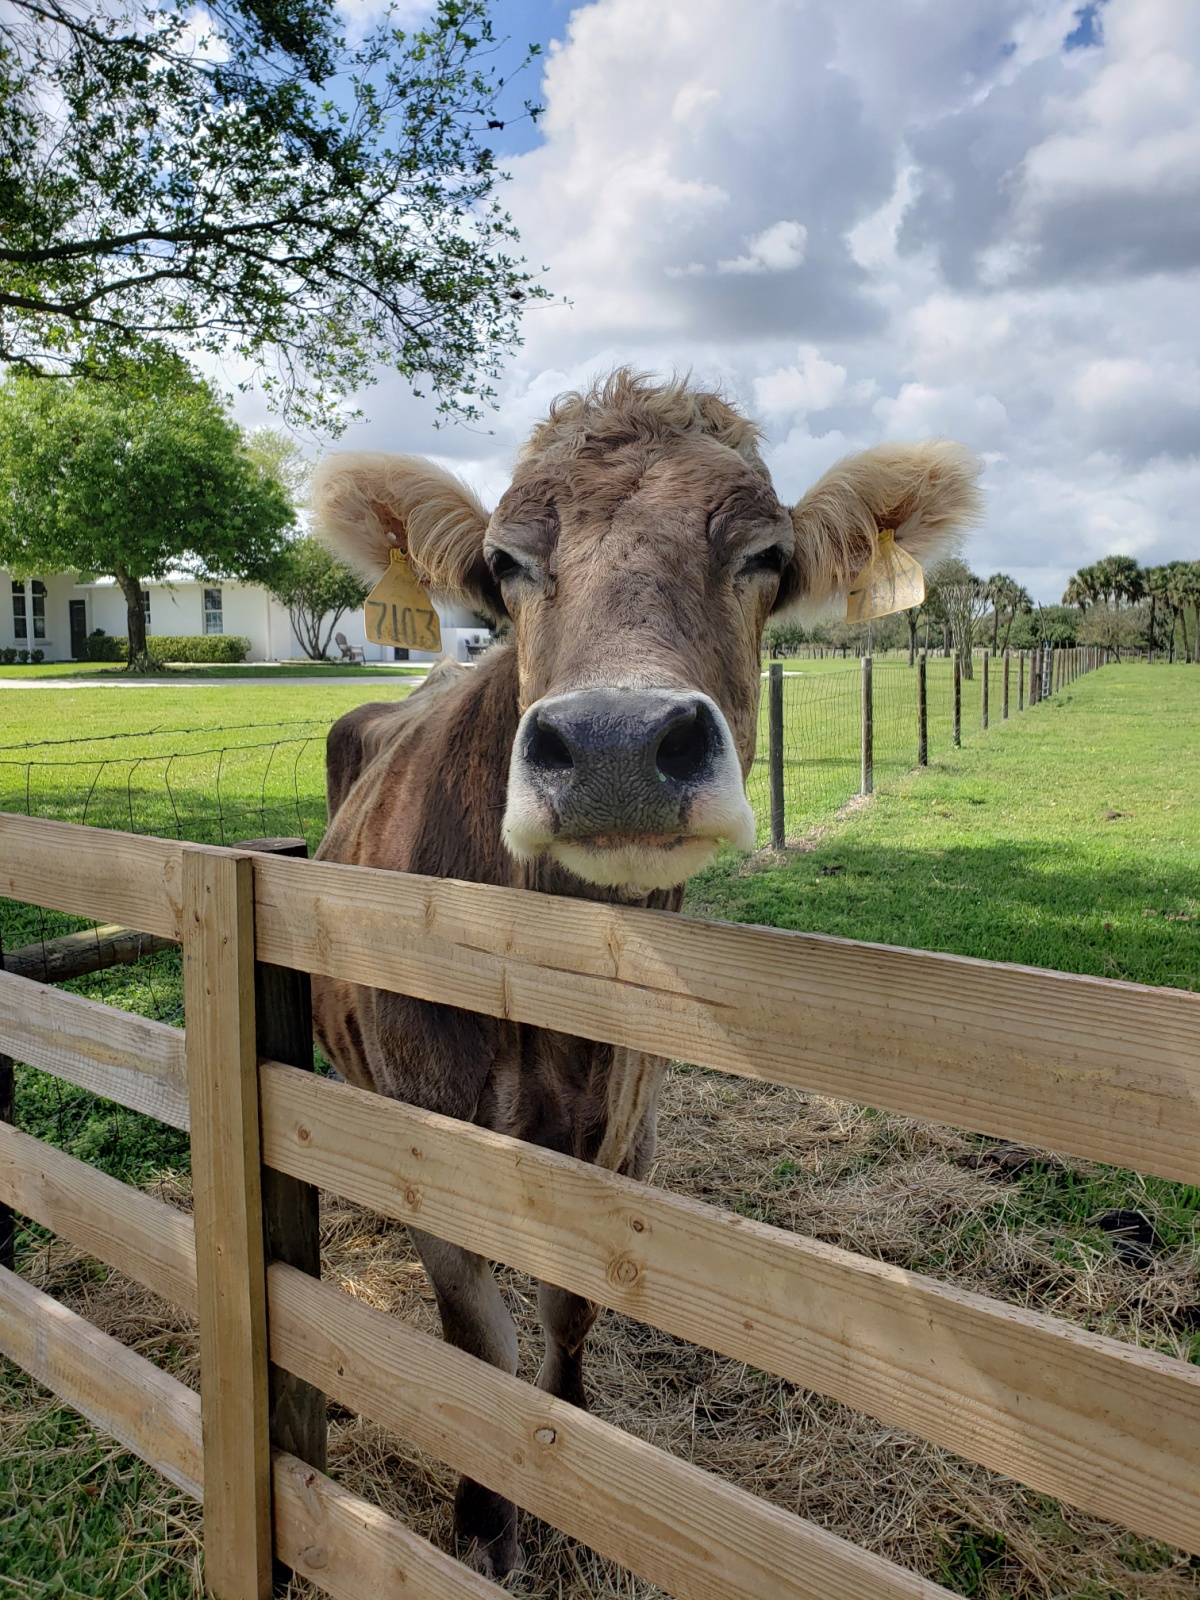 Learn about dairy farming sustainability